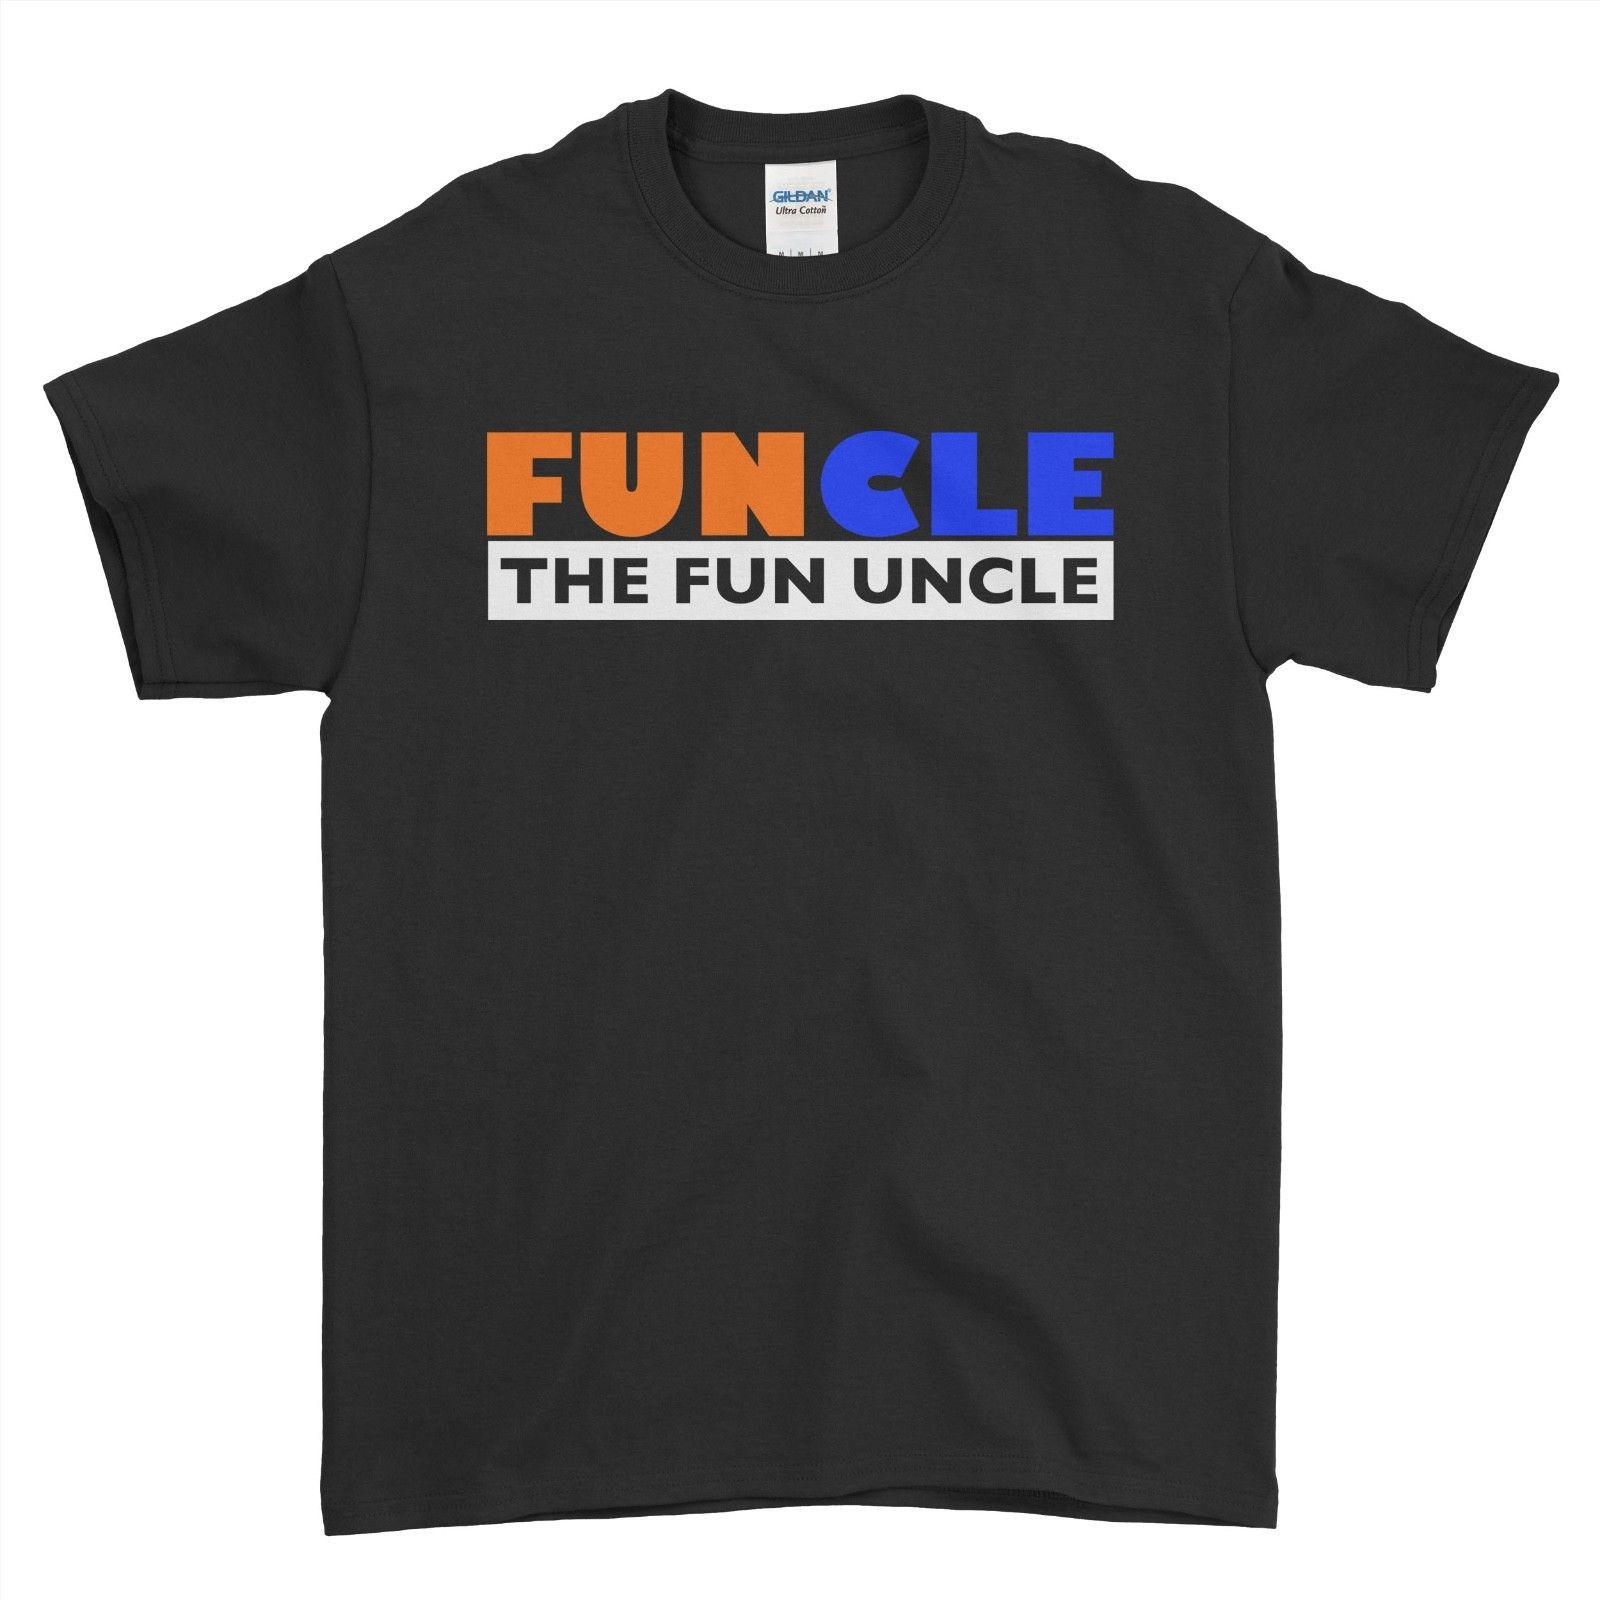 694a0dc9 FUNCLE Funny Awesome Uncle Looks Quote Fun Birthday Gift Men T Shirt Top Tee  Great T Shirts Buy T Shirt From Sevenshopping, $11.01| DHgate.Com